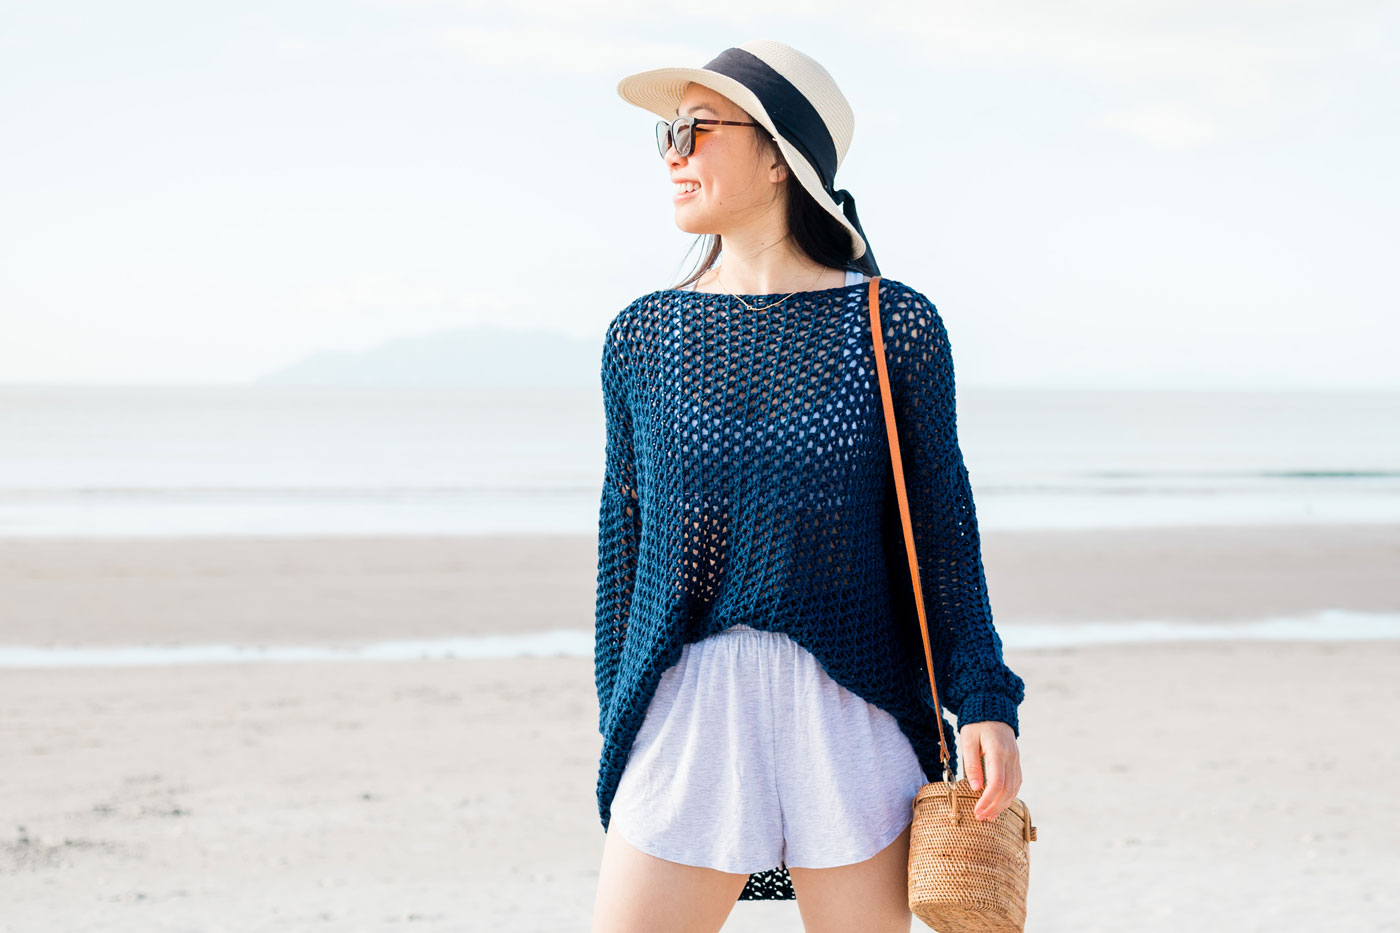 simple crochet cover up tucked into grey shorts with sun hat and rattan bag